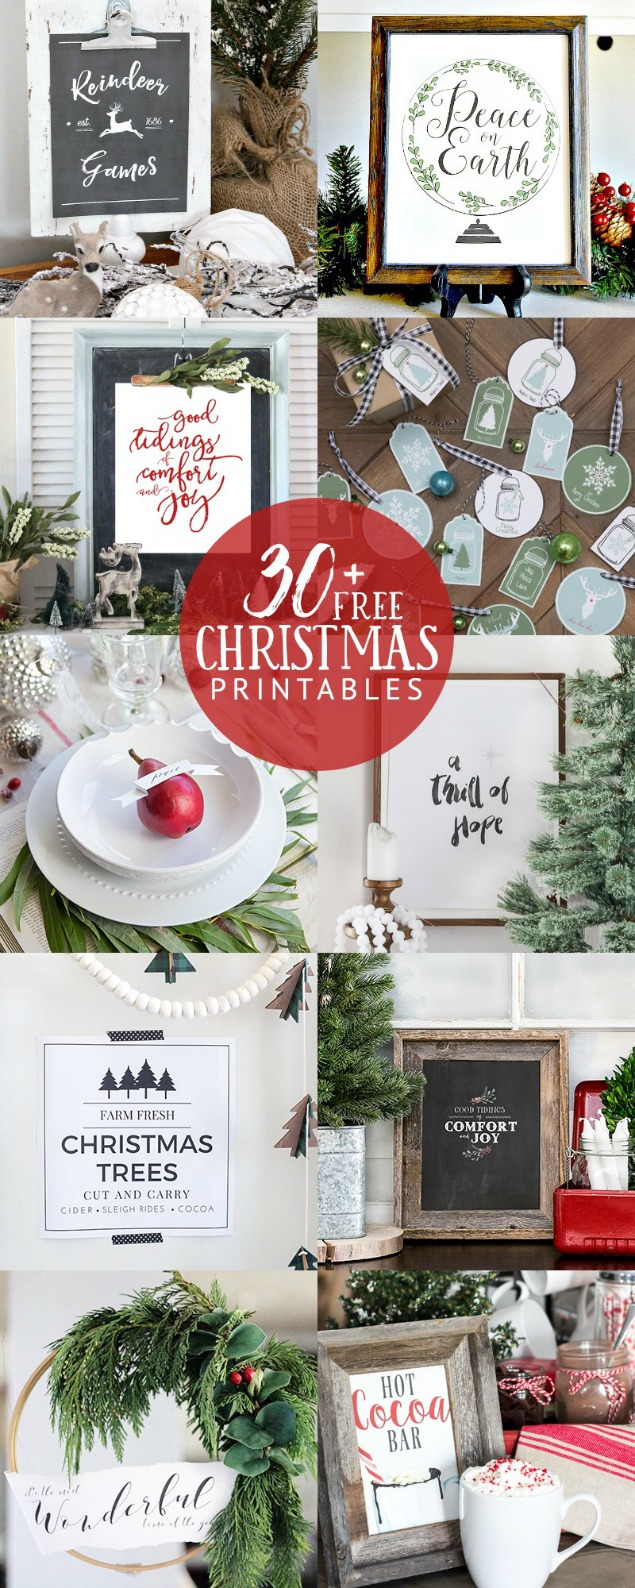 Gorgeous collection of free Christmas printables - there's something for every room!  Such an easy way to add some Christmas decor to your home.